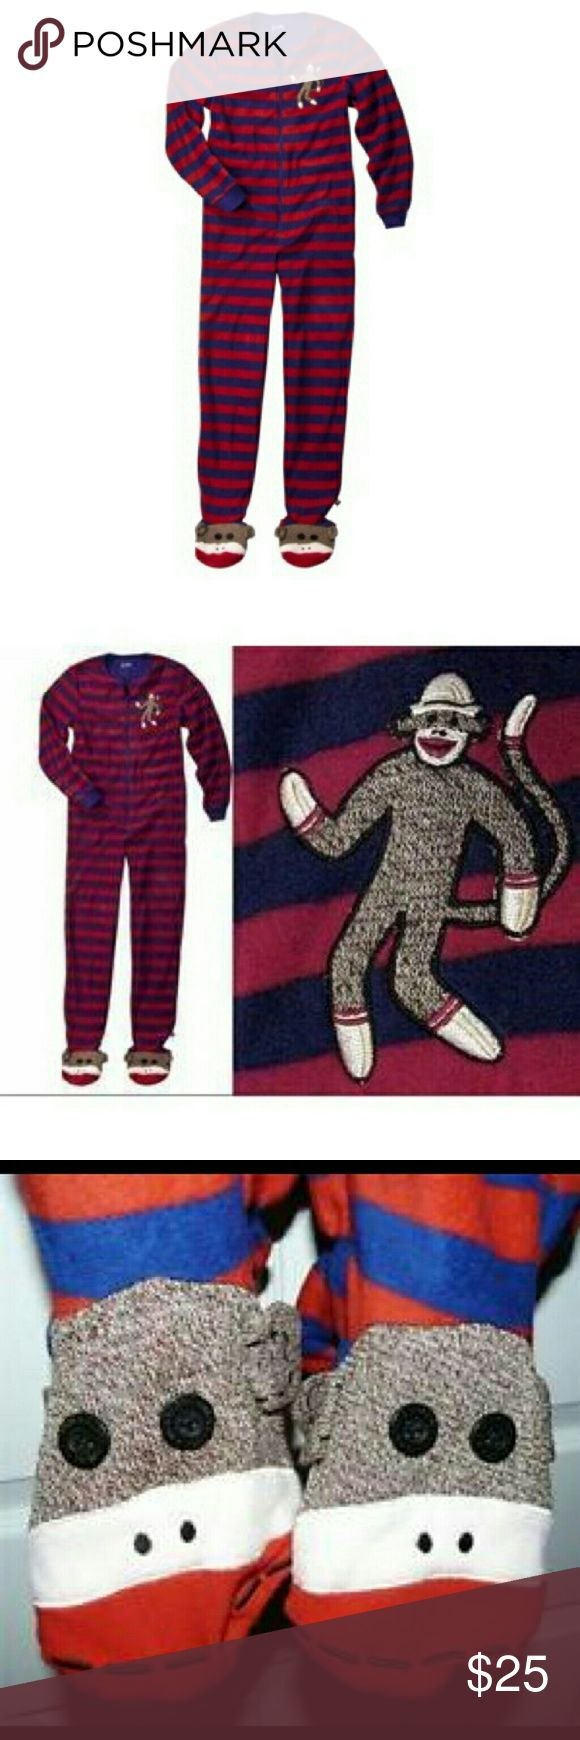 Nick and Nora Sock Monkey Onesie Pajamas XXL XXL sock monkey onesie fleece pajamas with red and blue stripes. In excellent used condition. Only worn once for a photo. Nick & Nora Intimates & Sleepwear Pajamas